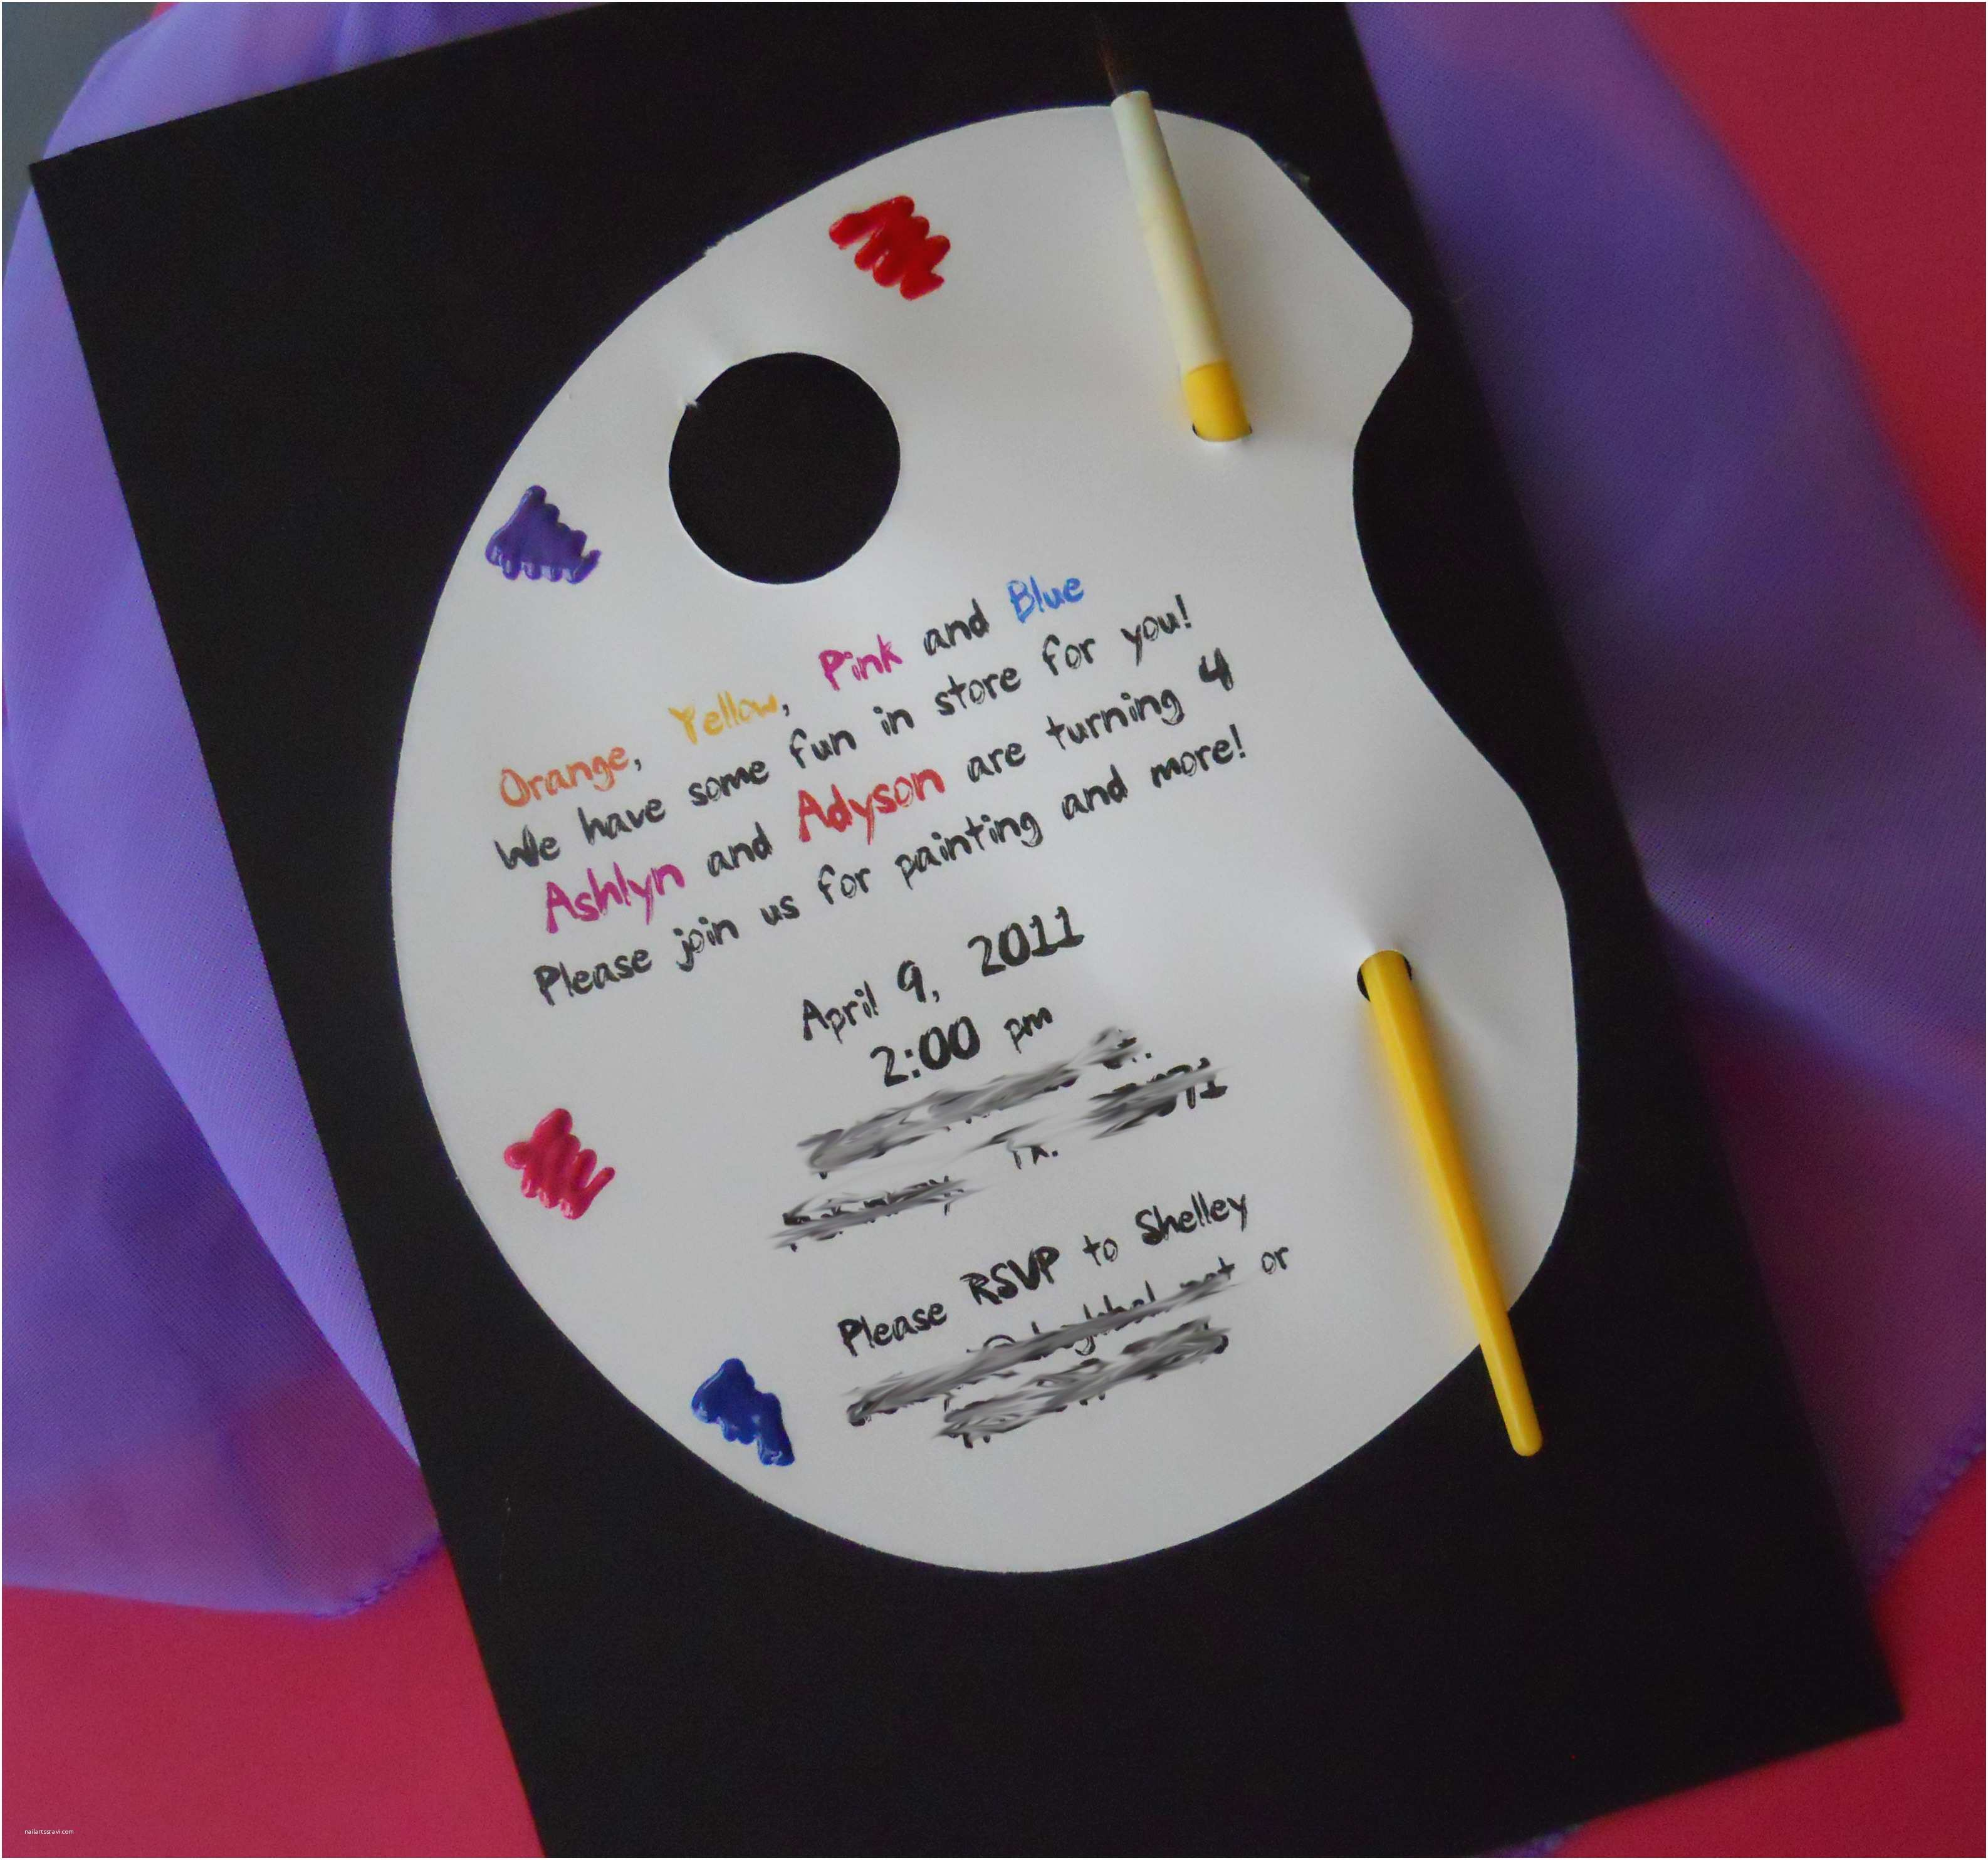 Painting Birthday Party Invitations Painting Birthday Party